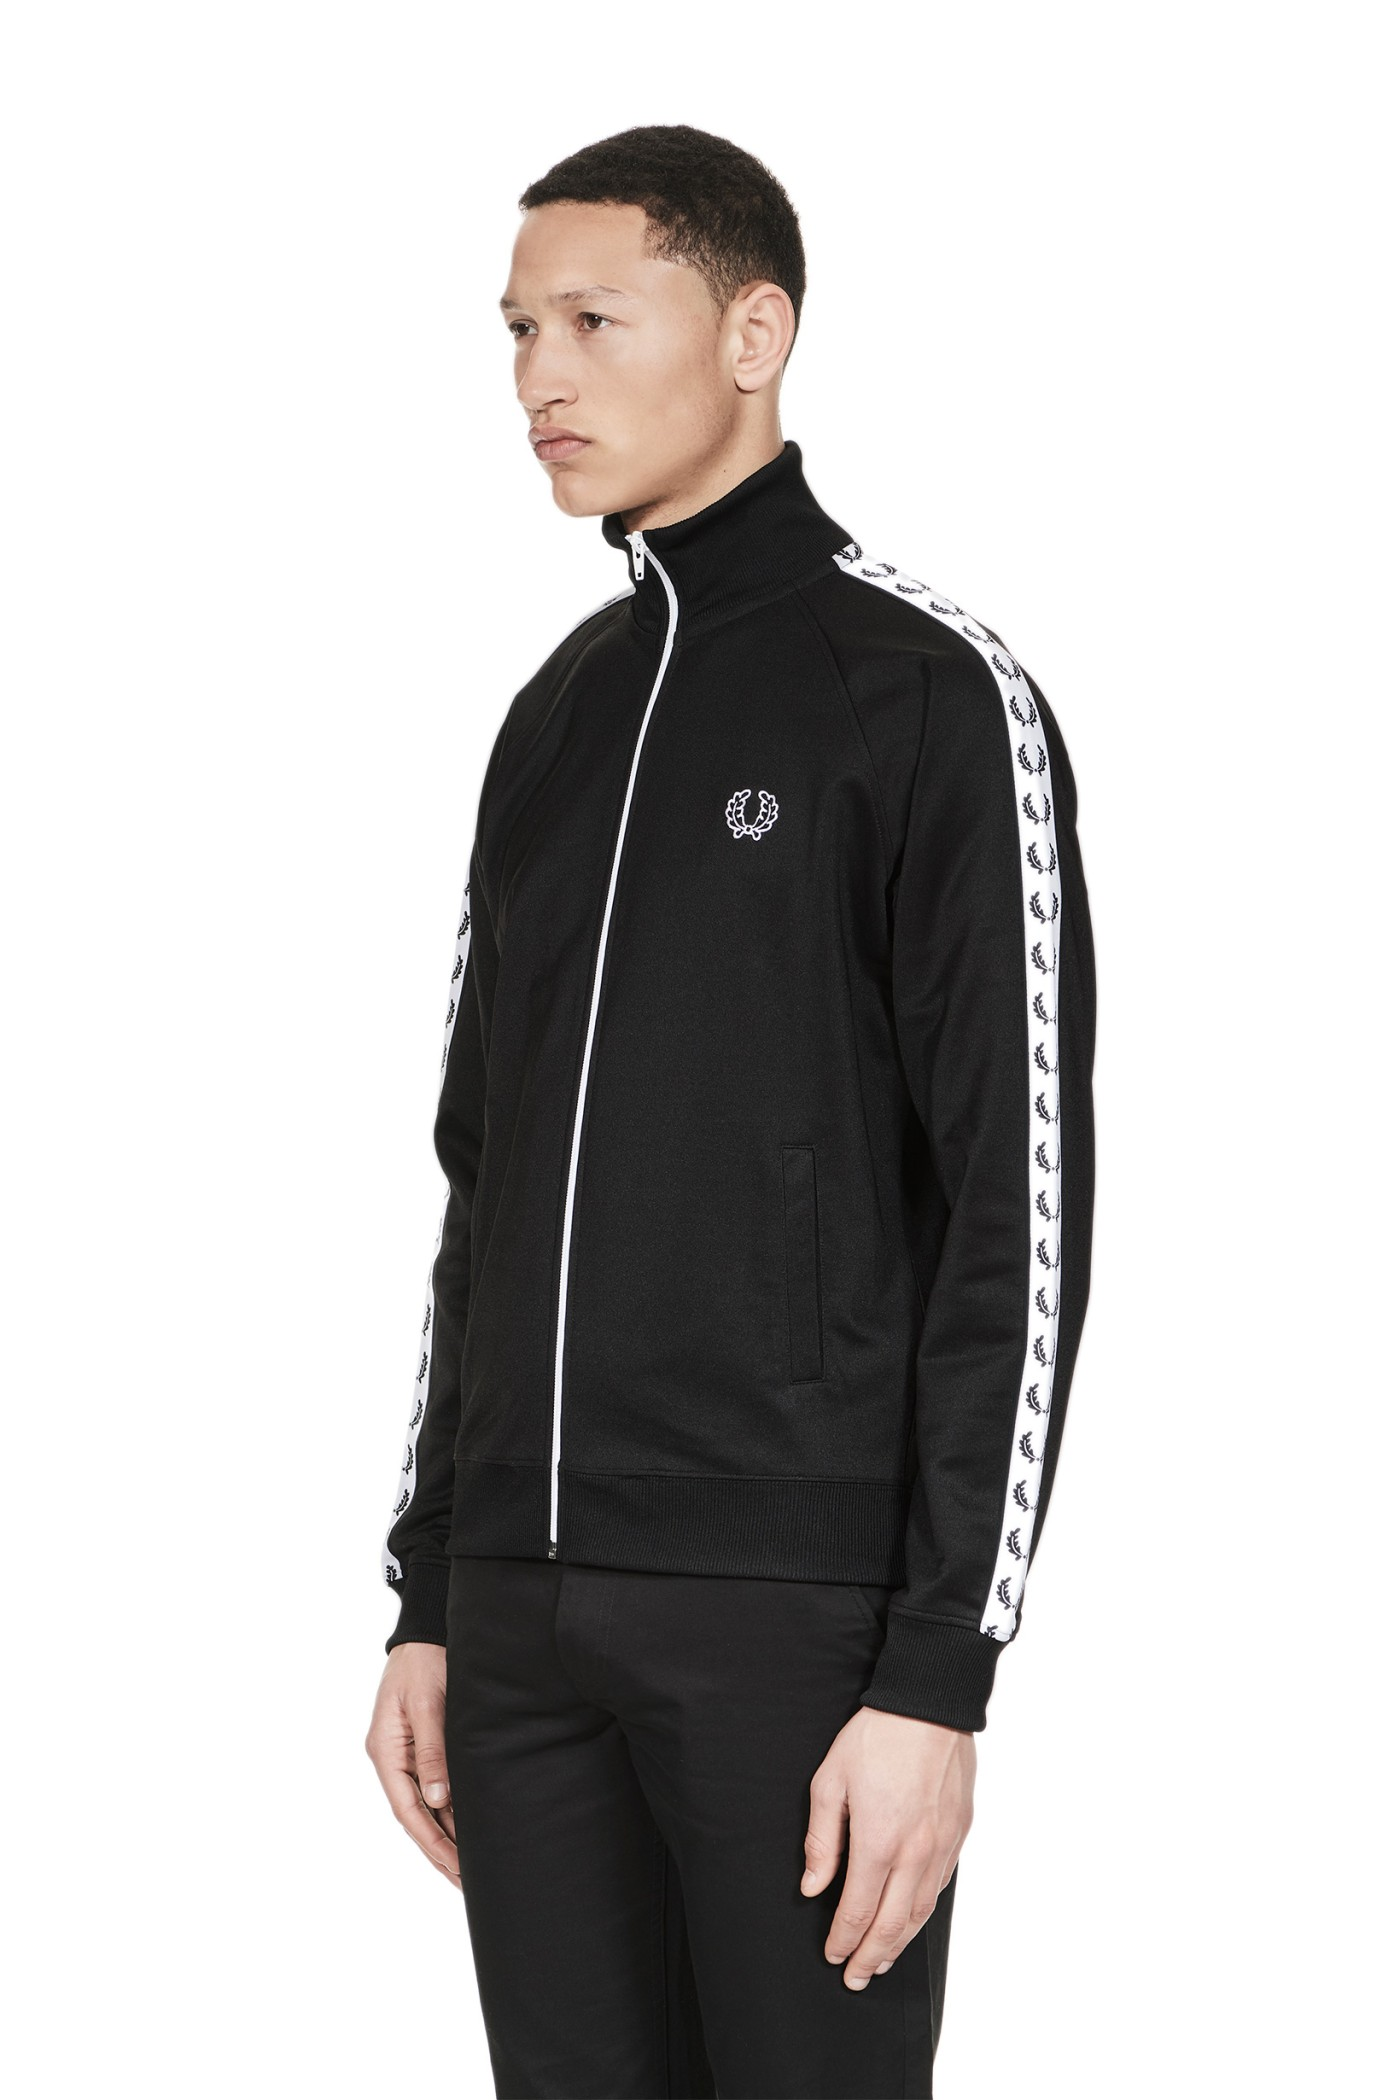 fred perry sports authentic taped track jacket black. Black Bedroom Furniture Sets. Home Design Ideas